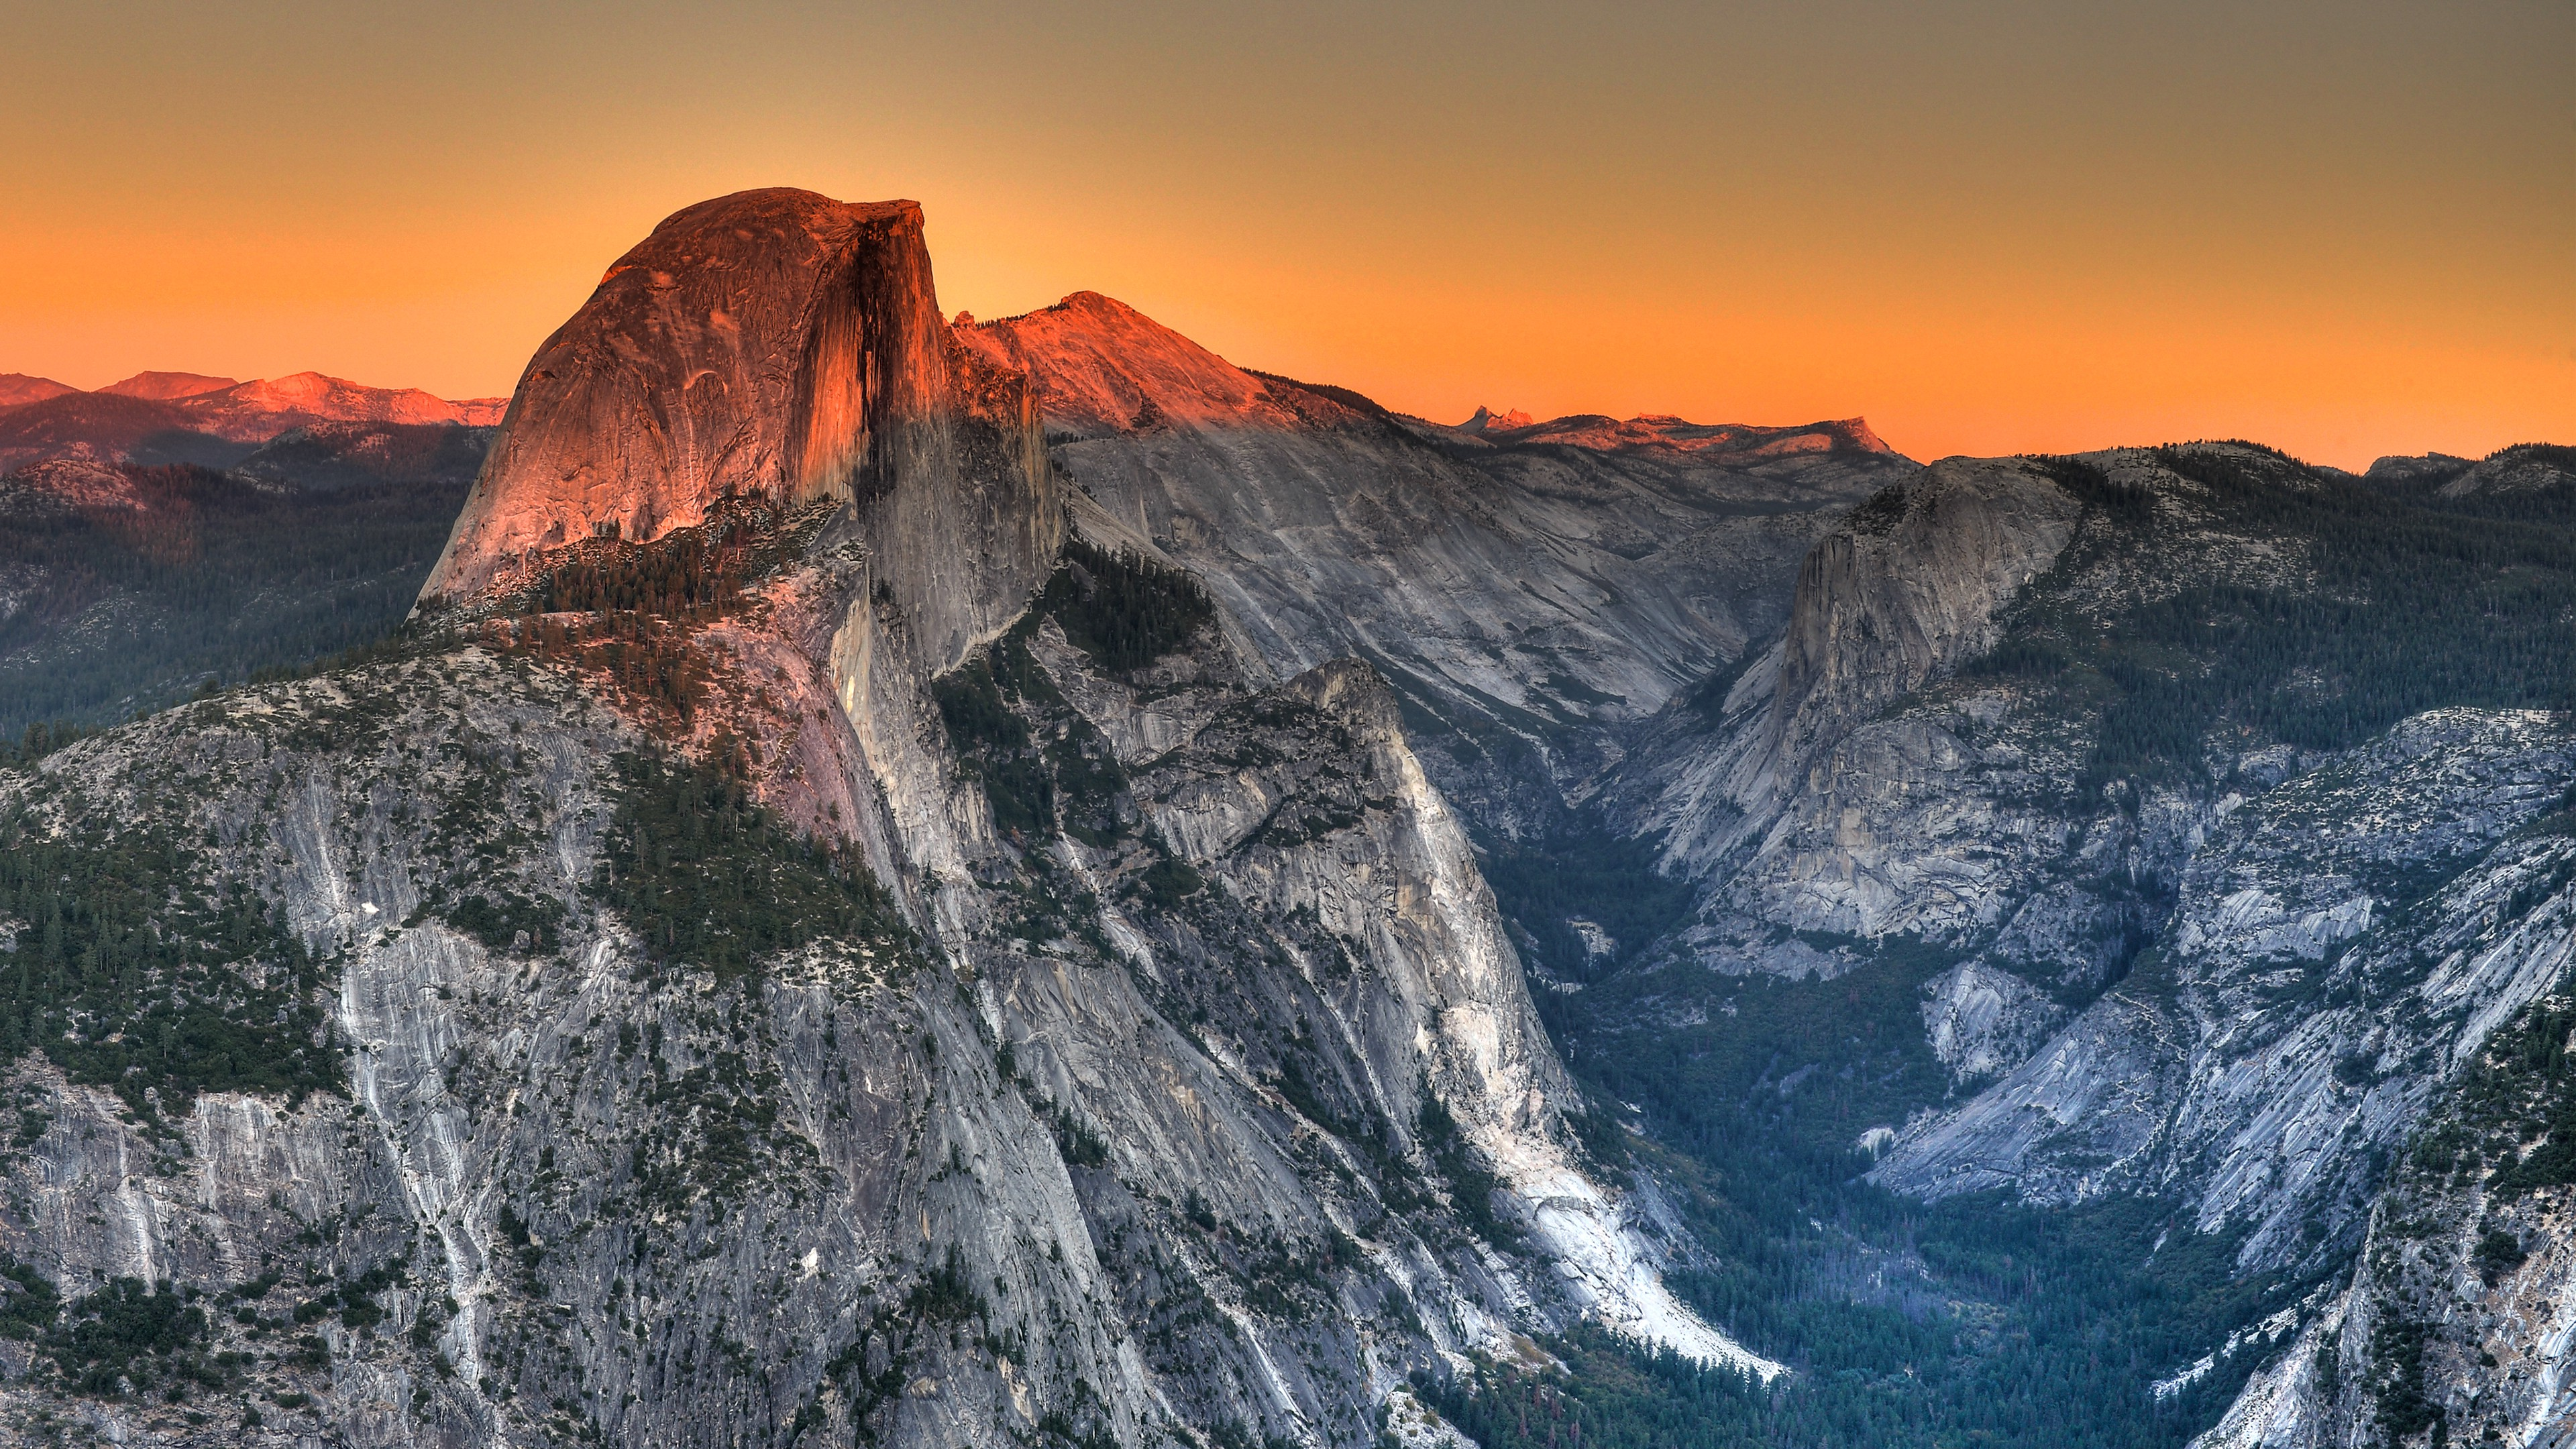 Yosemite National Park Landscape Wallpapers HD 3840x2160